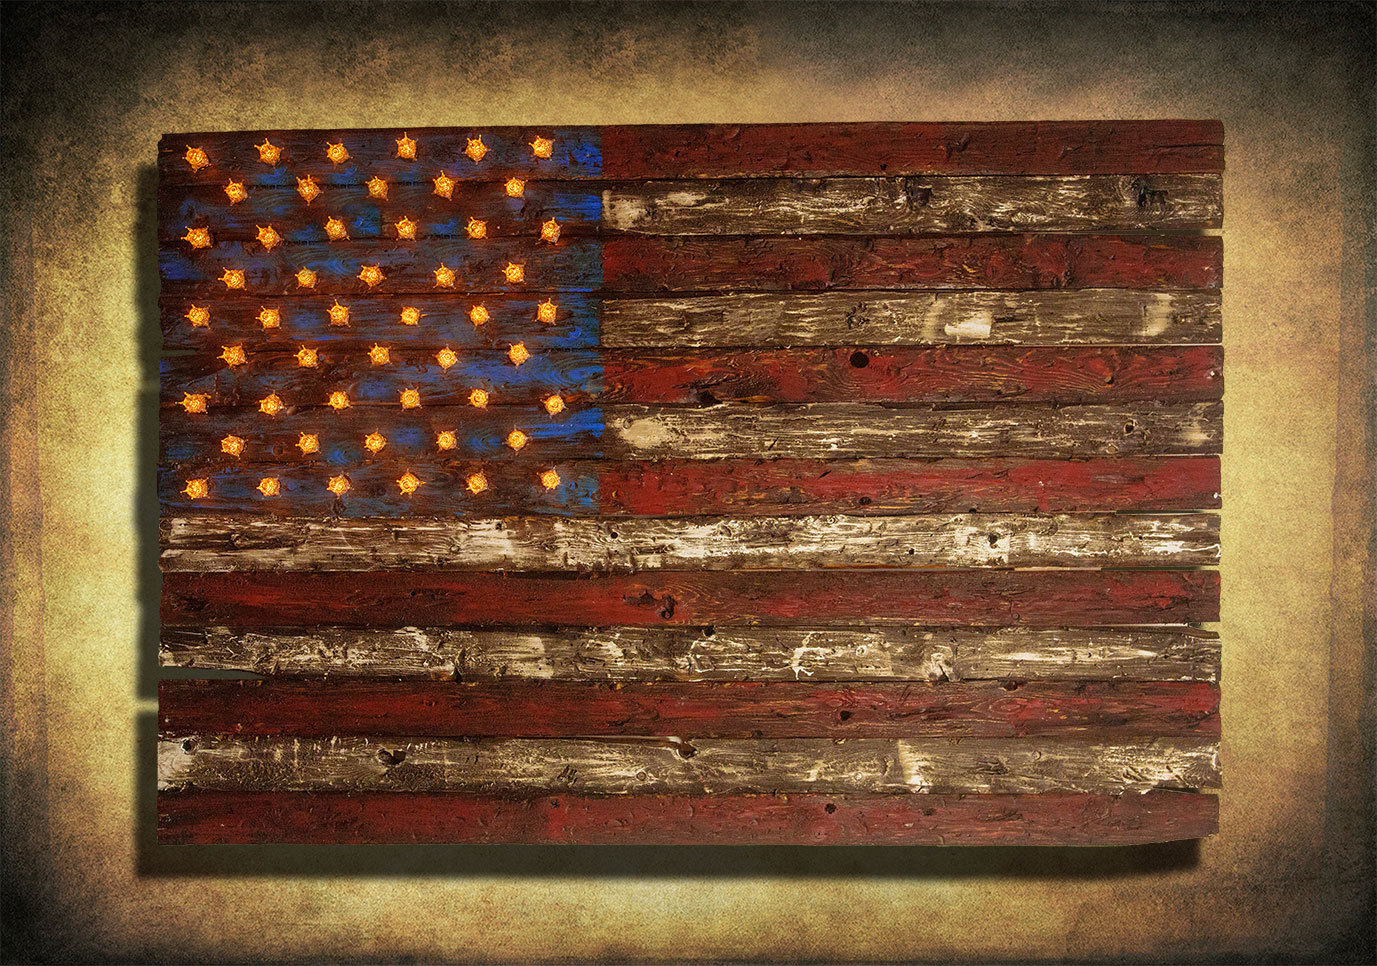 American Flag, Weathered Wood, Edison Bulb, 3D, Wooden, Vintage, Art,  Distressed, Red, Blue, White Patriotic, Wall Art, Usa, Home Decor Inside American Flag 3D Wall Decor (Image 13 of 30)